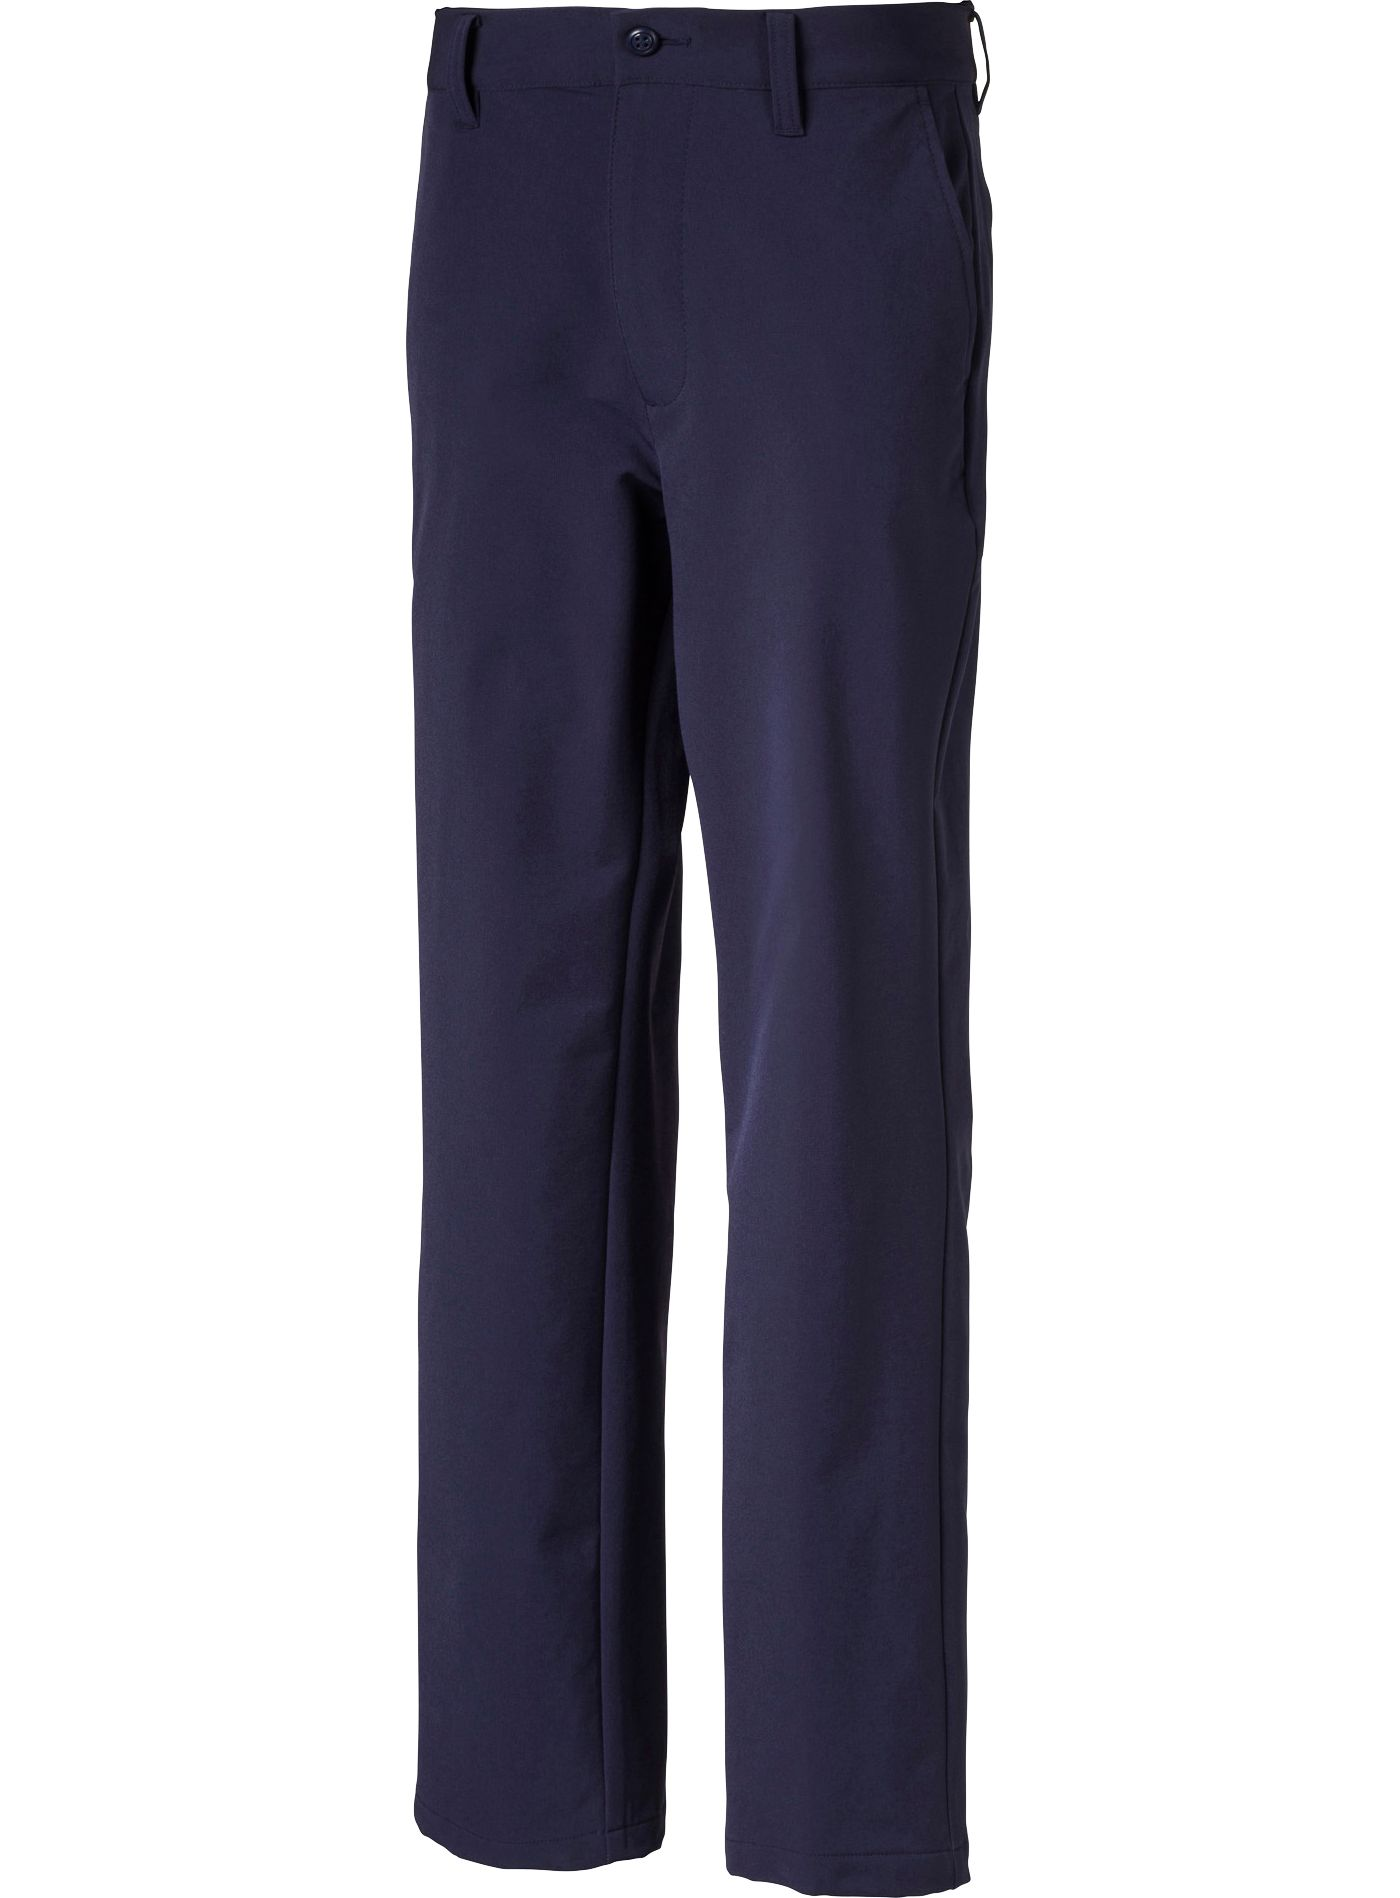 PUMA Boys' Stretch Utility Golf Pants